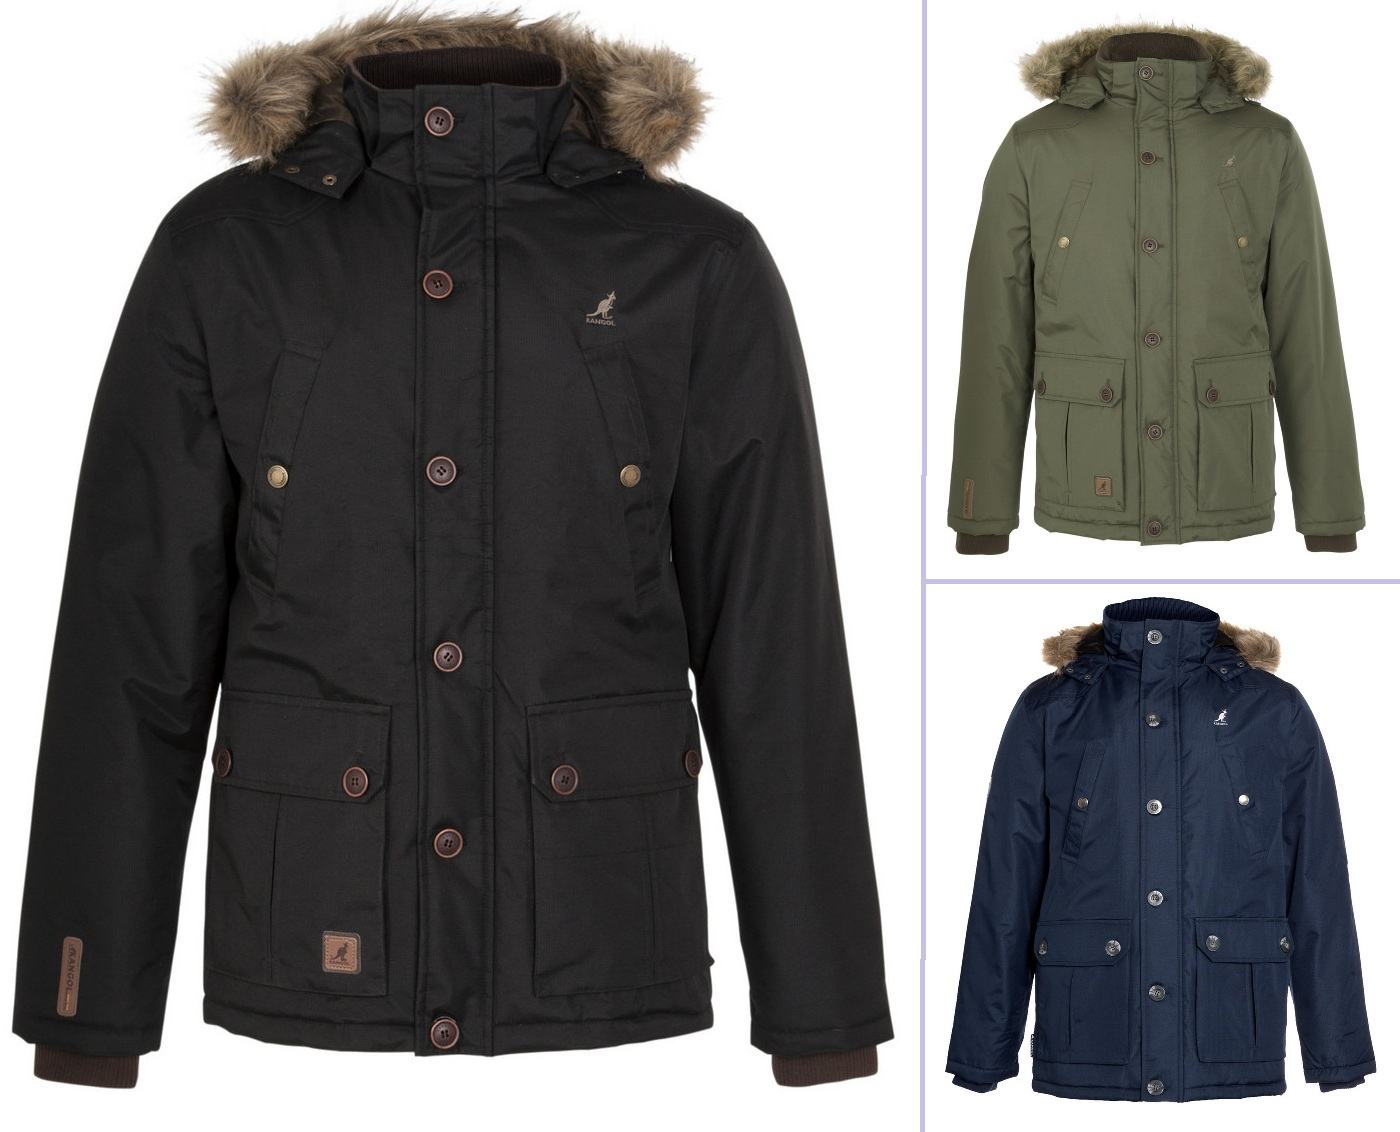 See our guide to the best winter jackets of , Many of the jackets are offered in both men's and women's styles, At the high end of the winter jacket spectrum is Toronto-based Canada Goose. These jackets are the real deal: they're extremely warm, well built, and downright fashionable for those that want a sleek look.